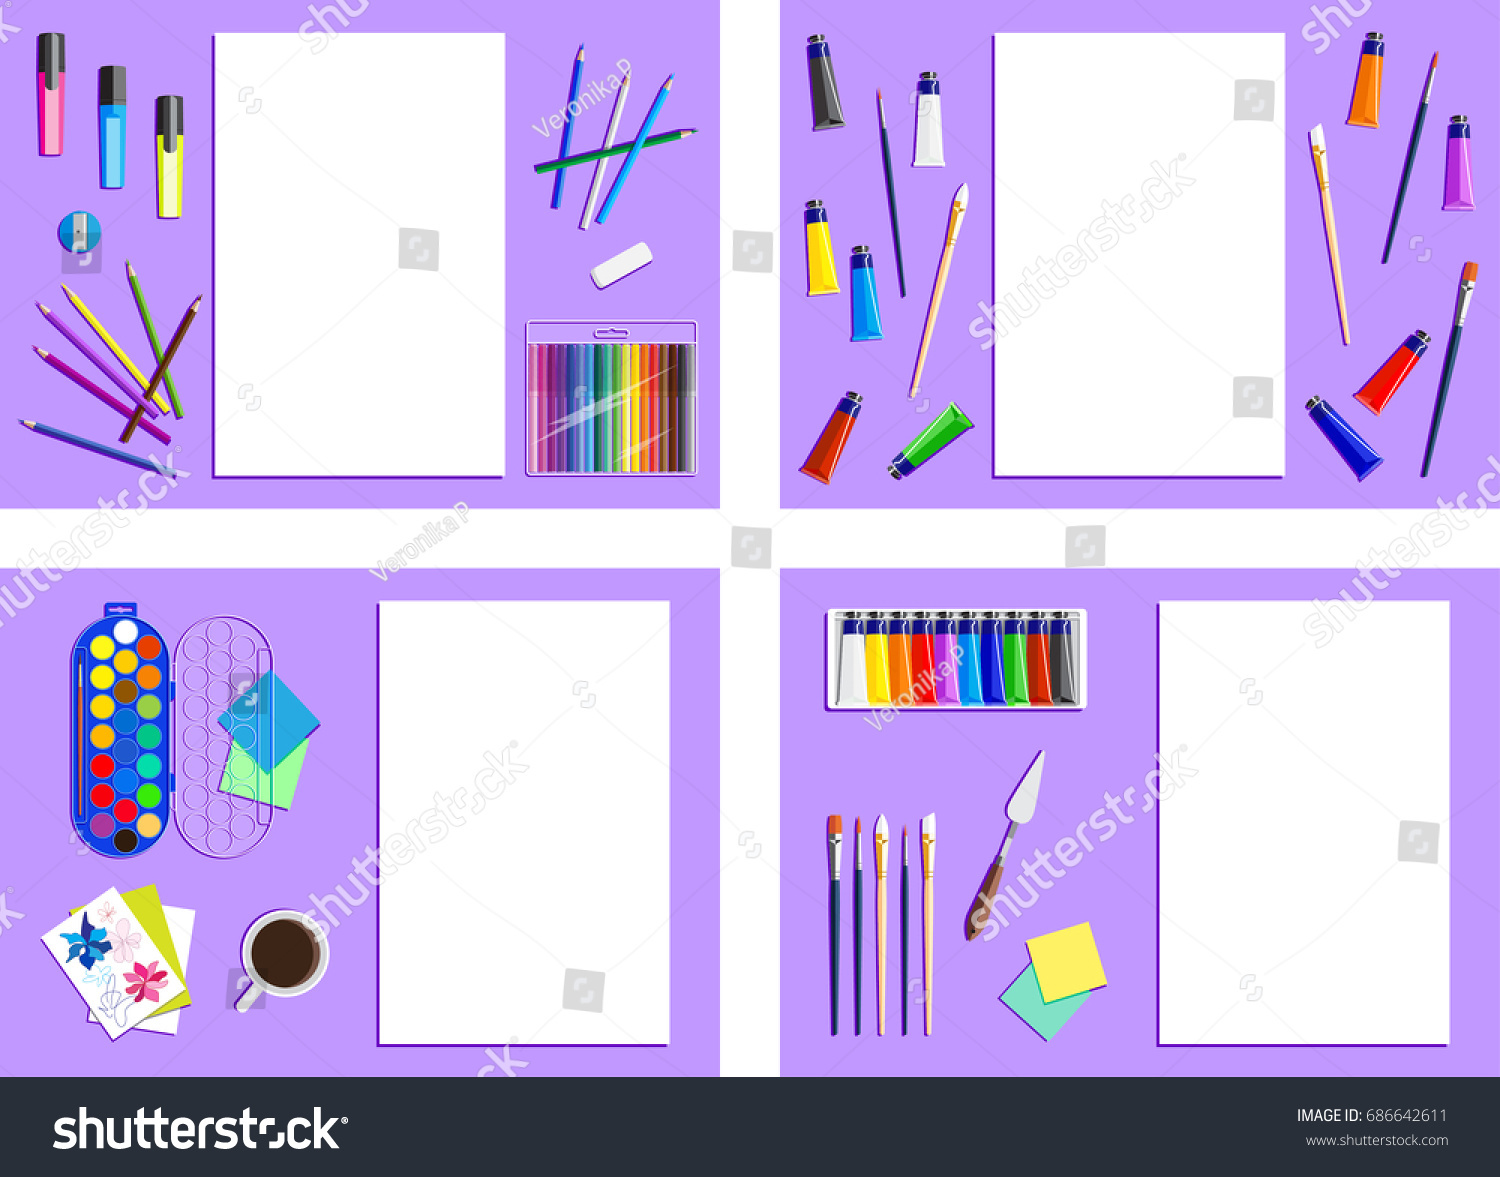 Set Frames Artists Supplies Drawing Tools Stock Vector (Royalty Free ...